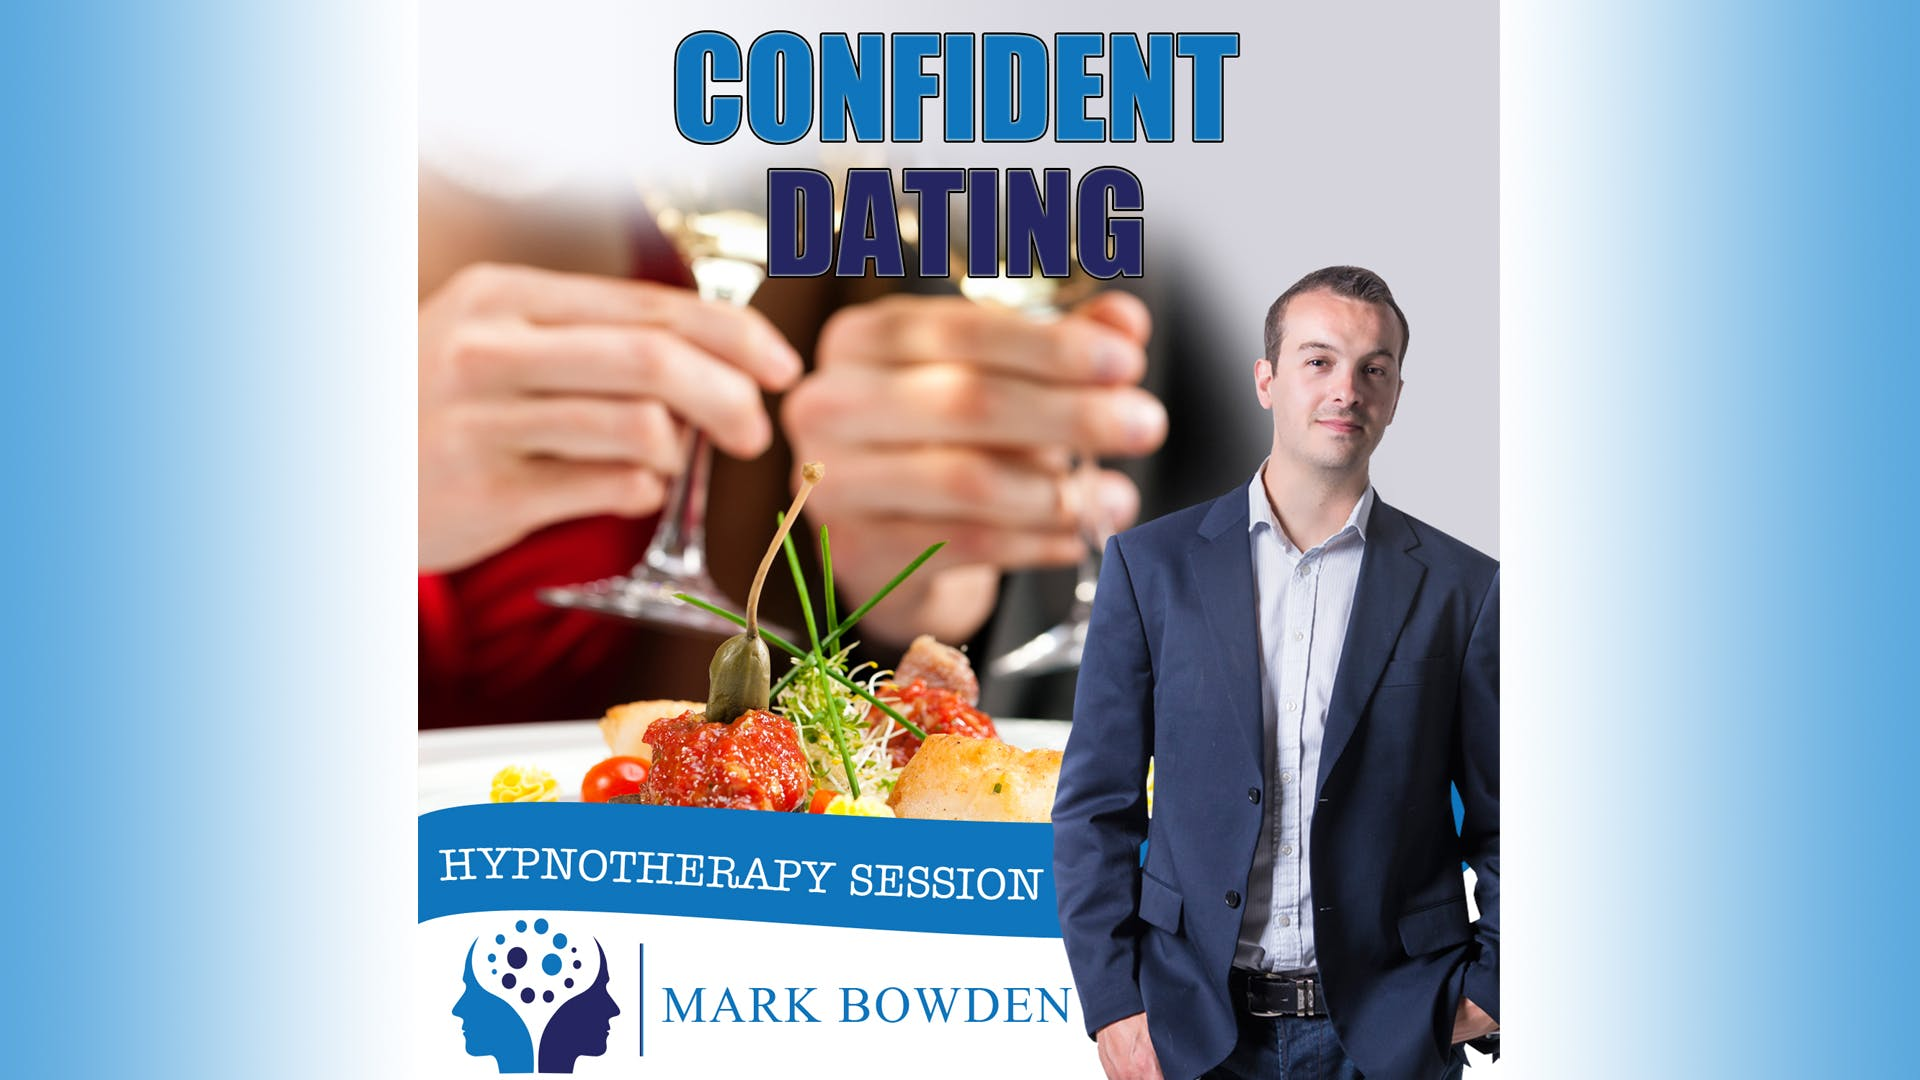 Confident Dating